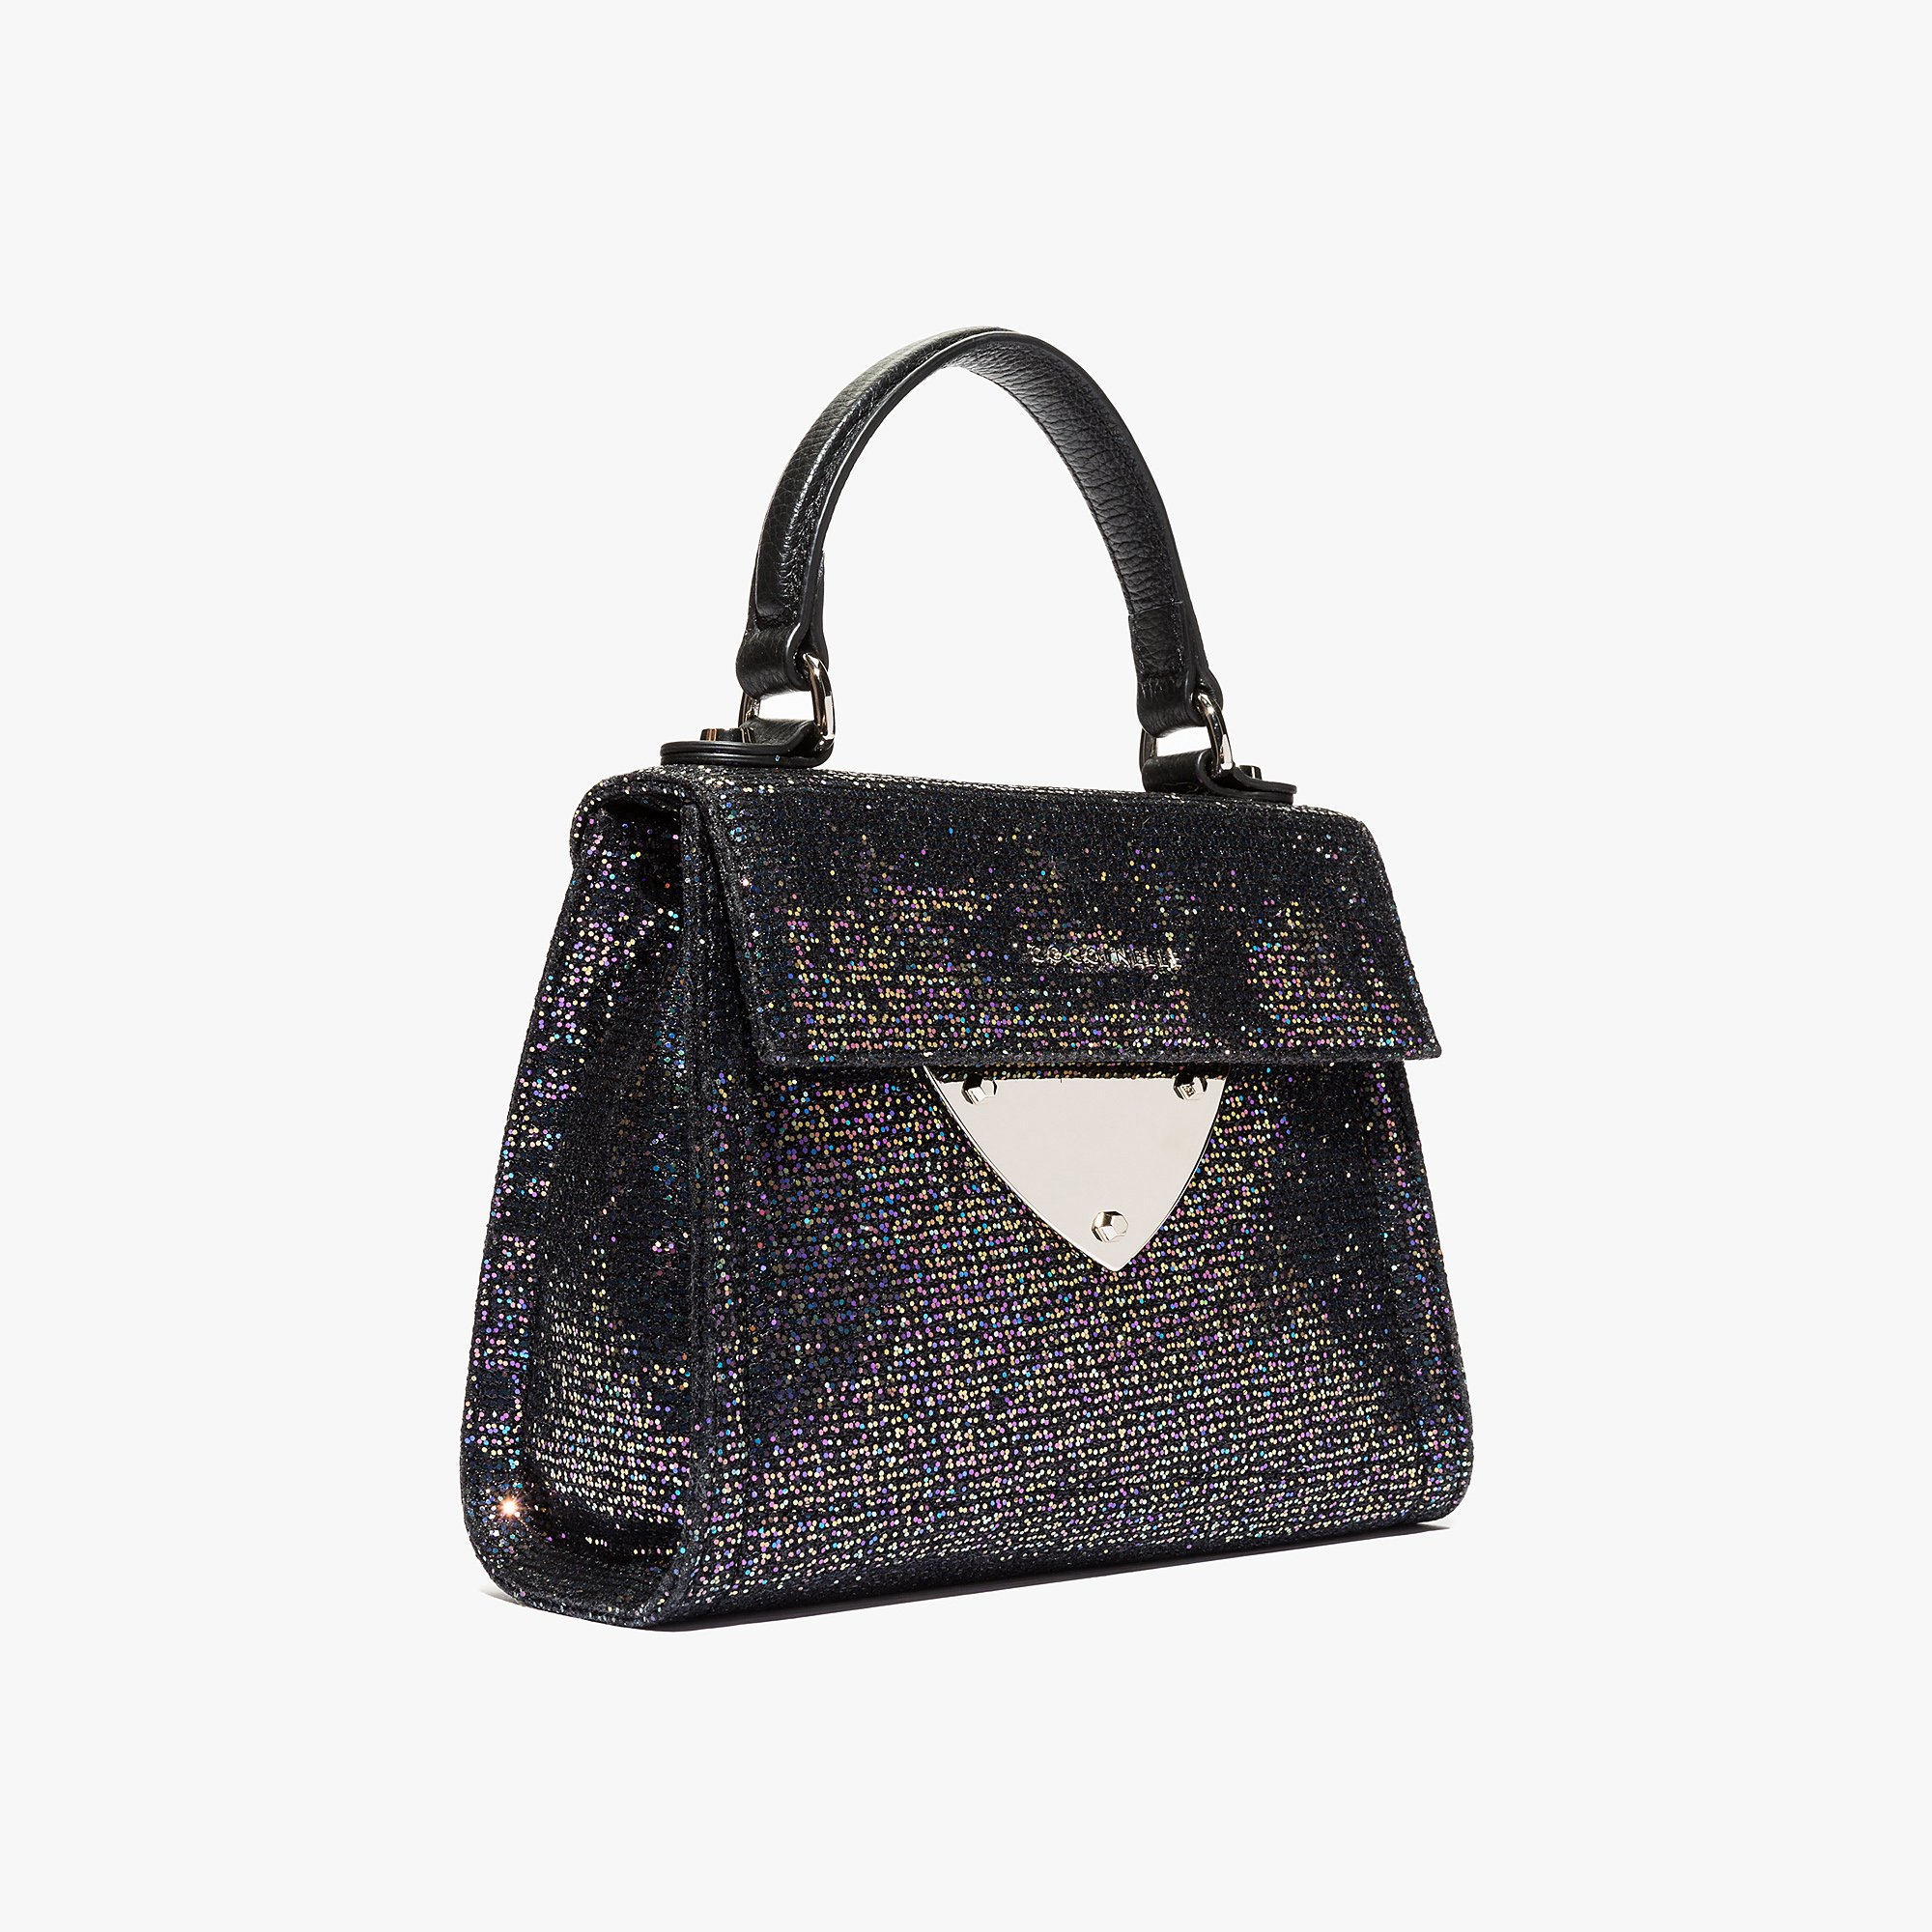 B14 mini bag in glittery leather